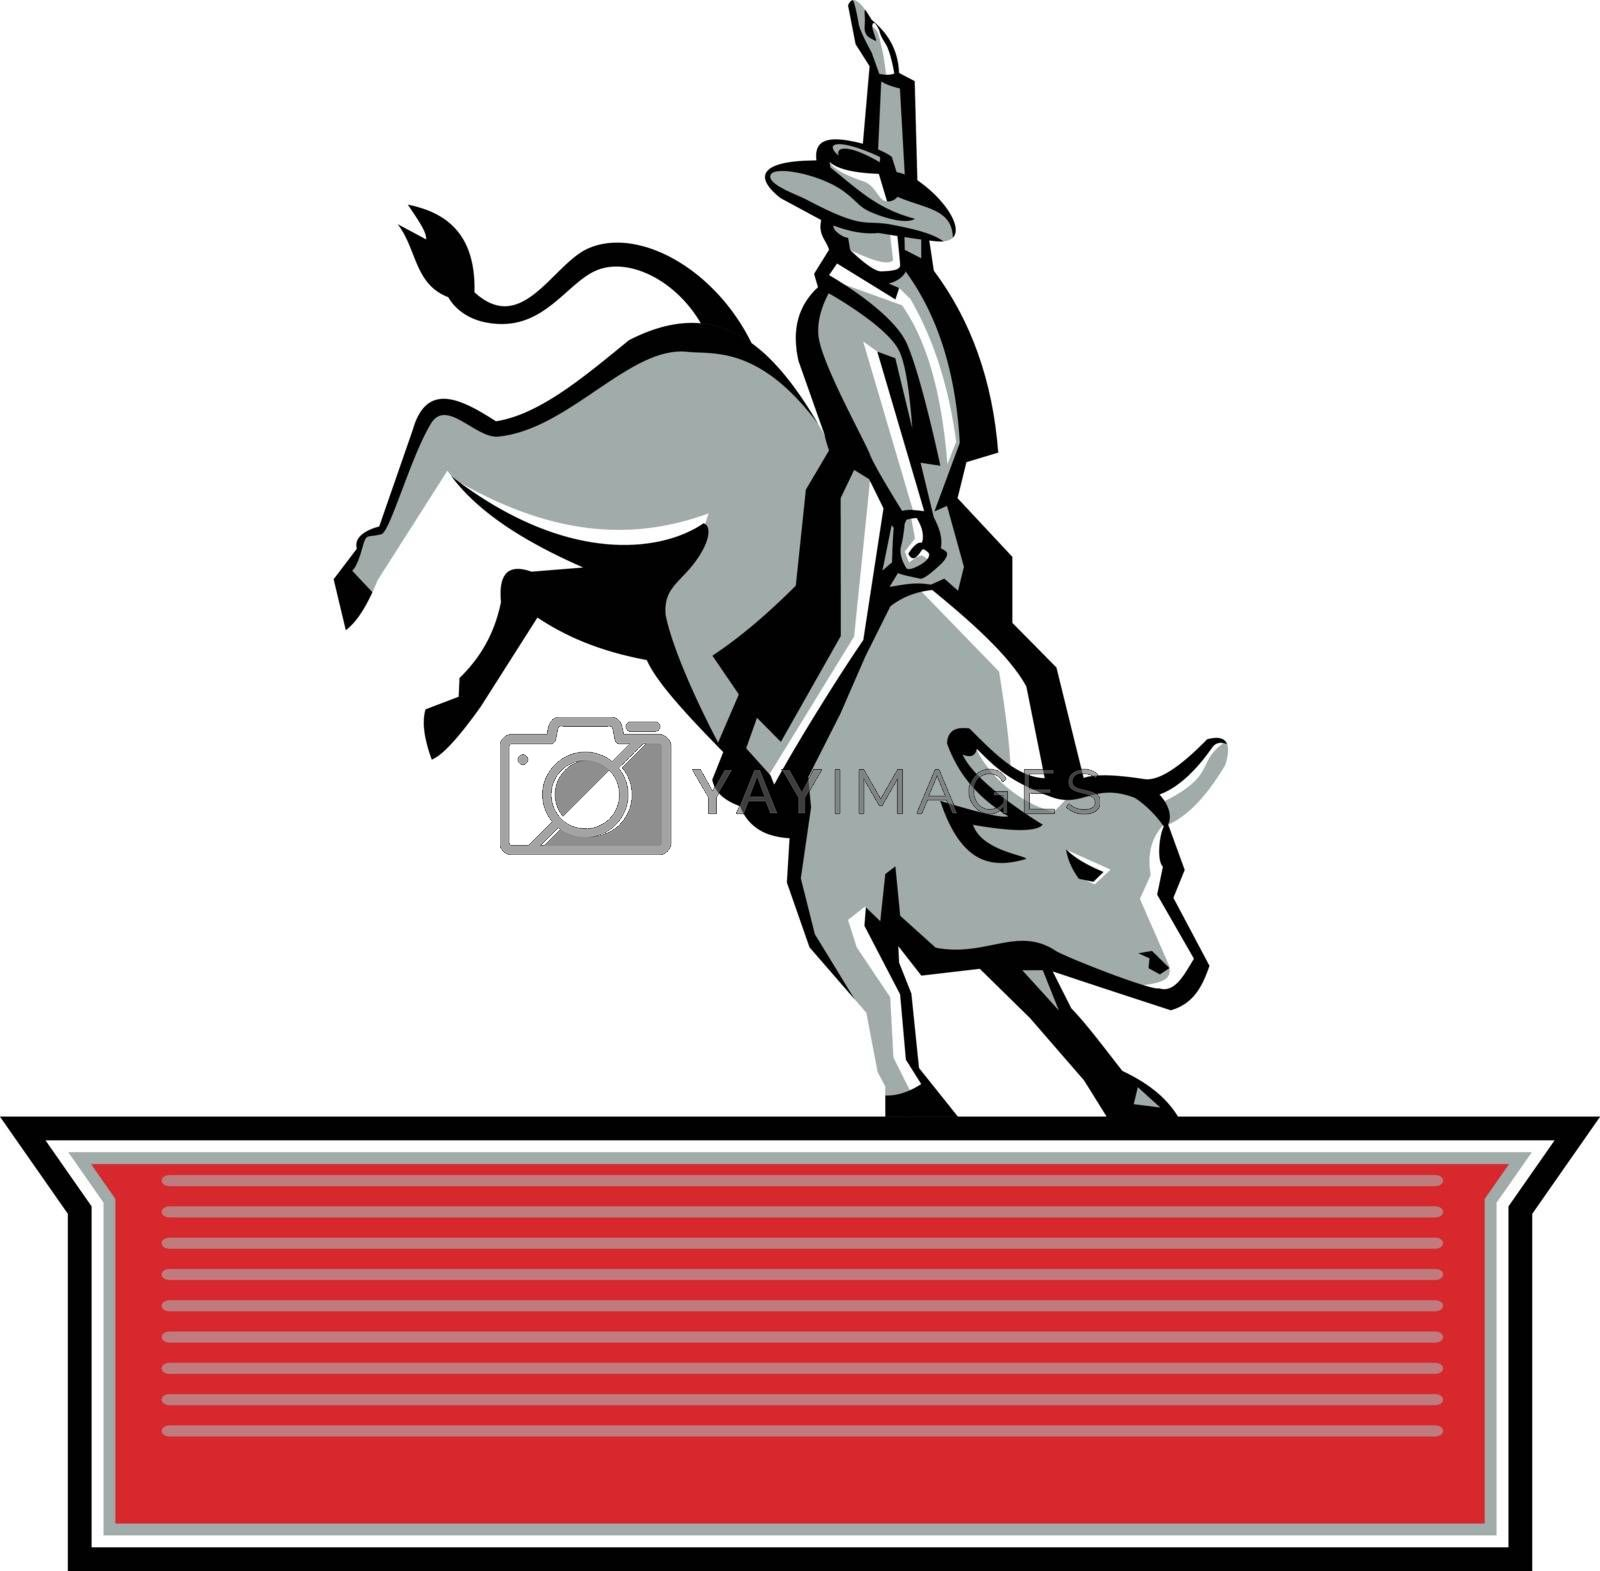 Retro style illustration of rodeo cowboy bull rider riding a bull with text banner at bottom on isolated background.